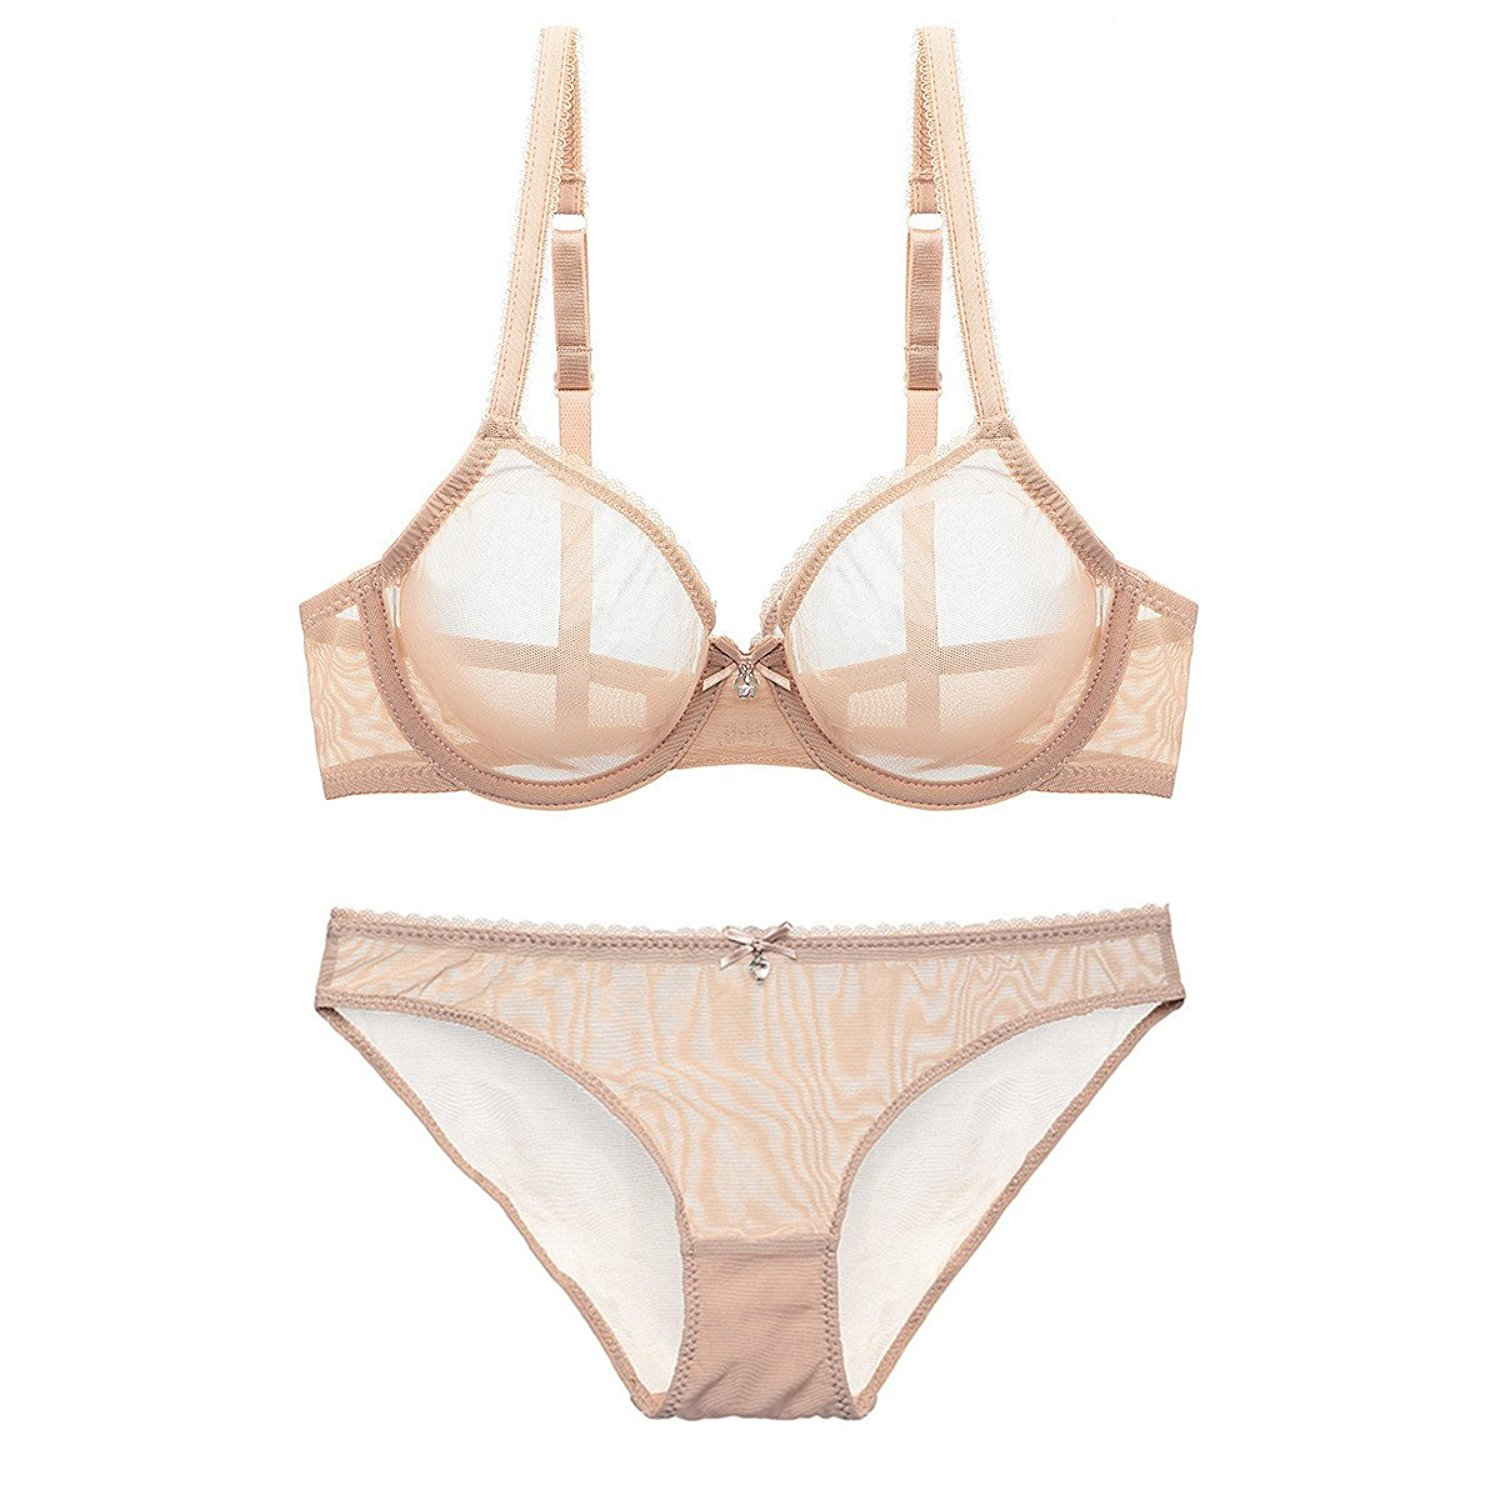 15696daa136 Get Quotations · NING GEGE Women See-Through Lace Push up Transparent Sheer  Bras for Women